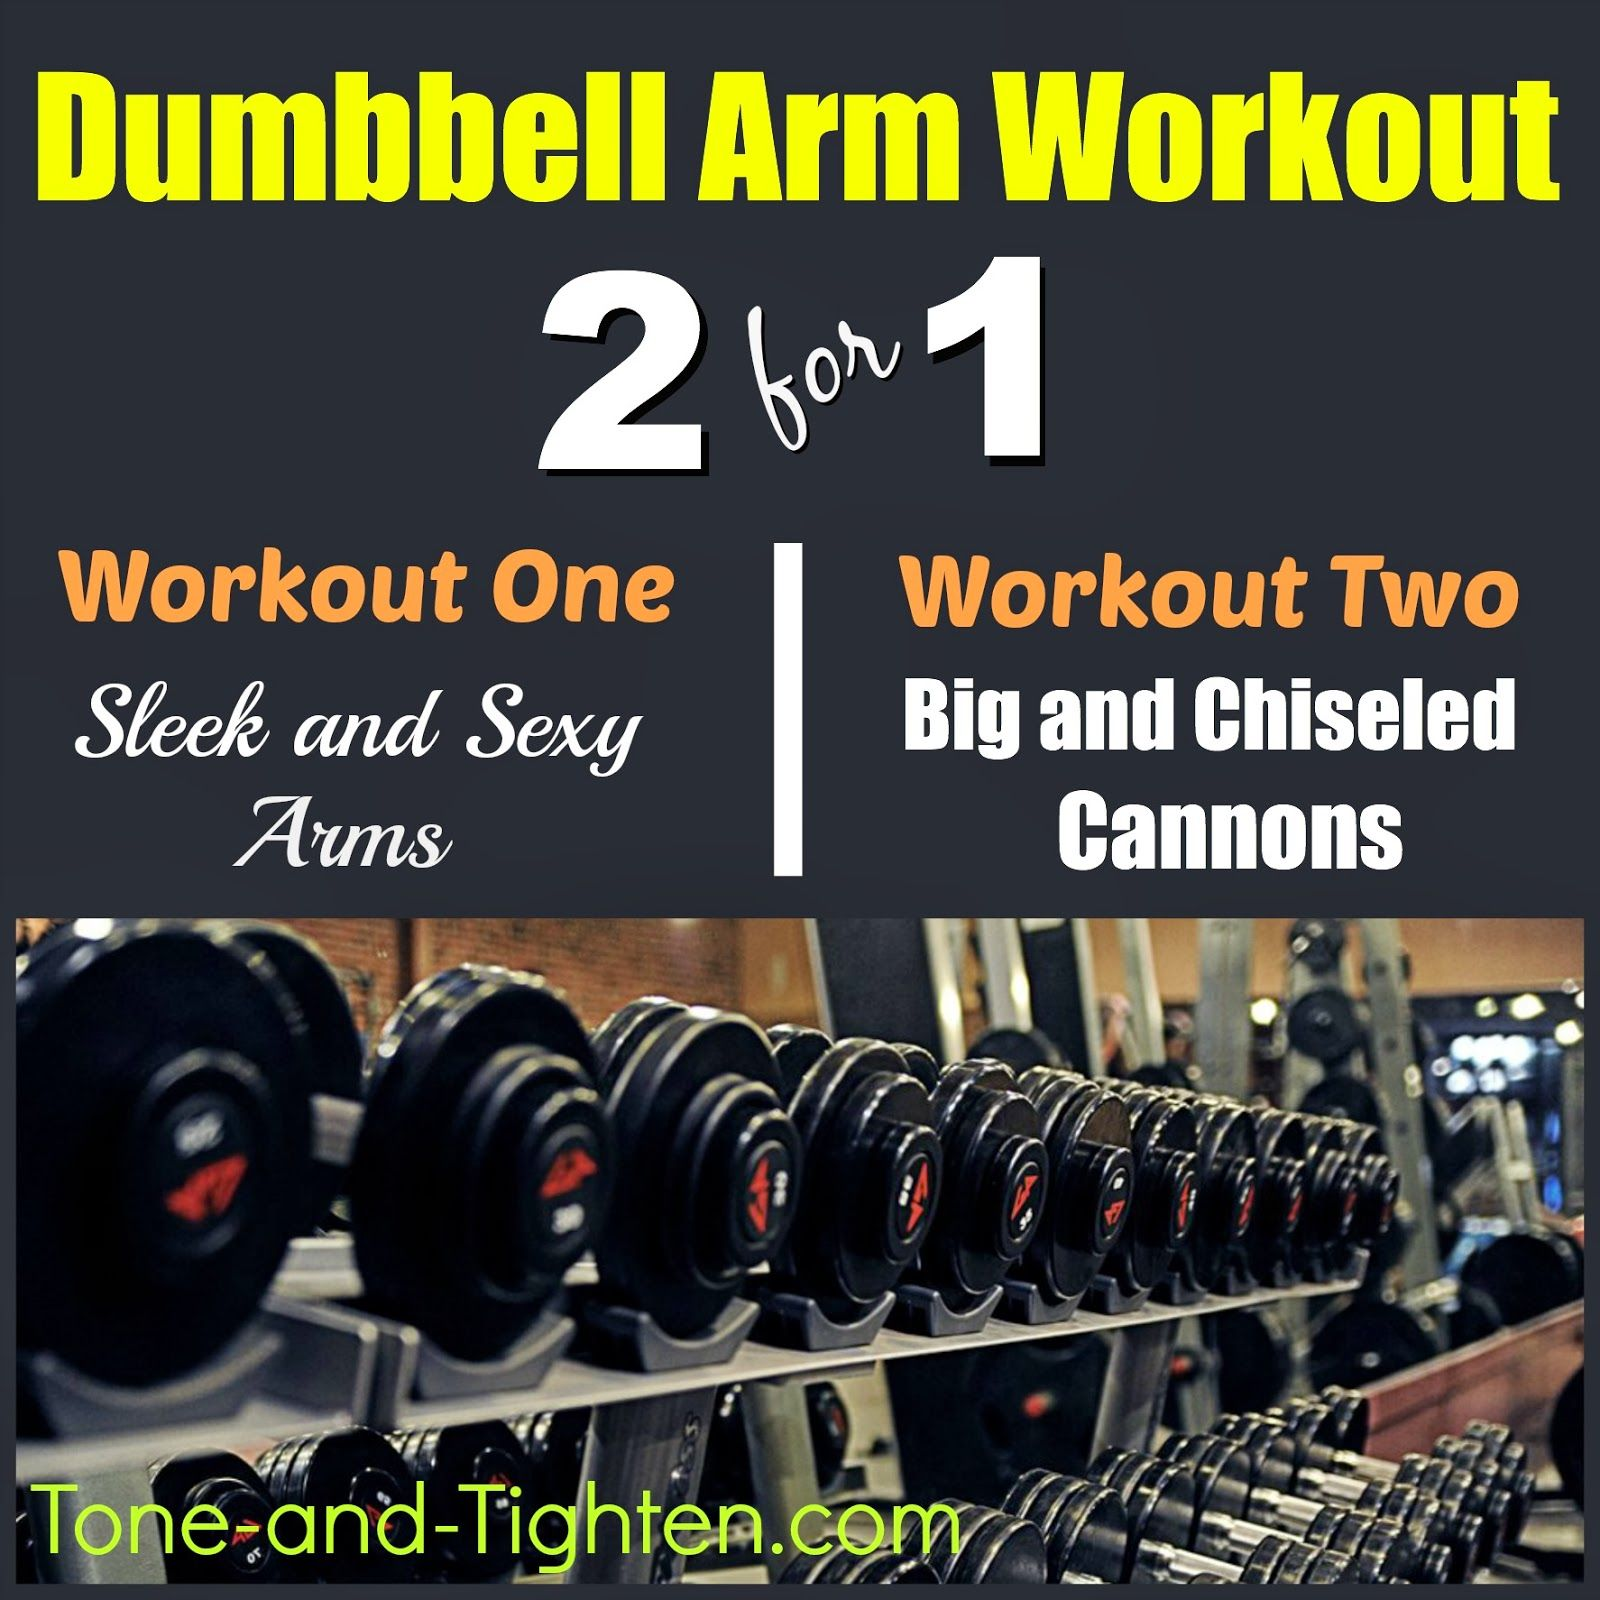 Free Weights Strength Training: Dumbbell / Free Weight Arm Workout